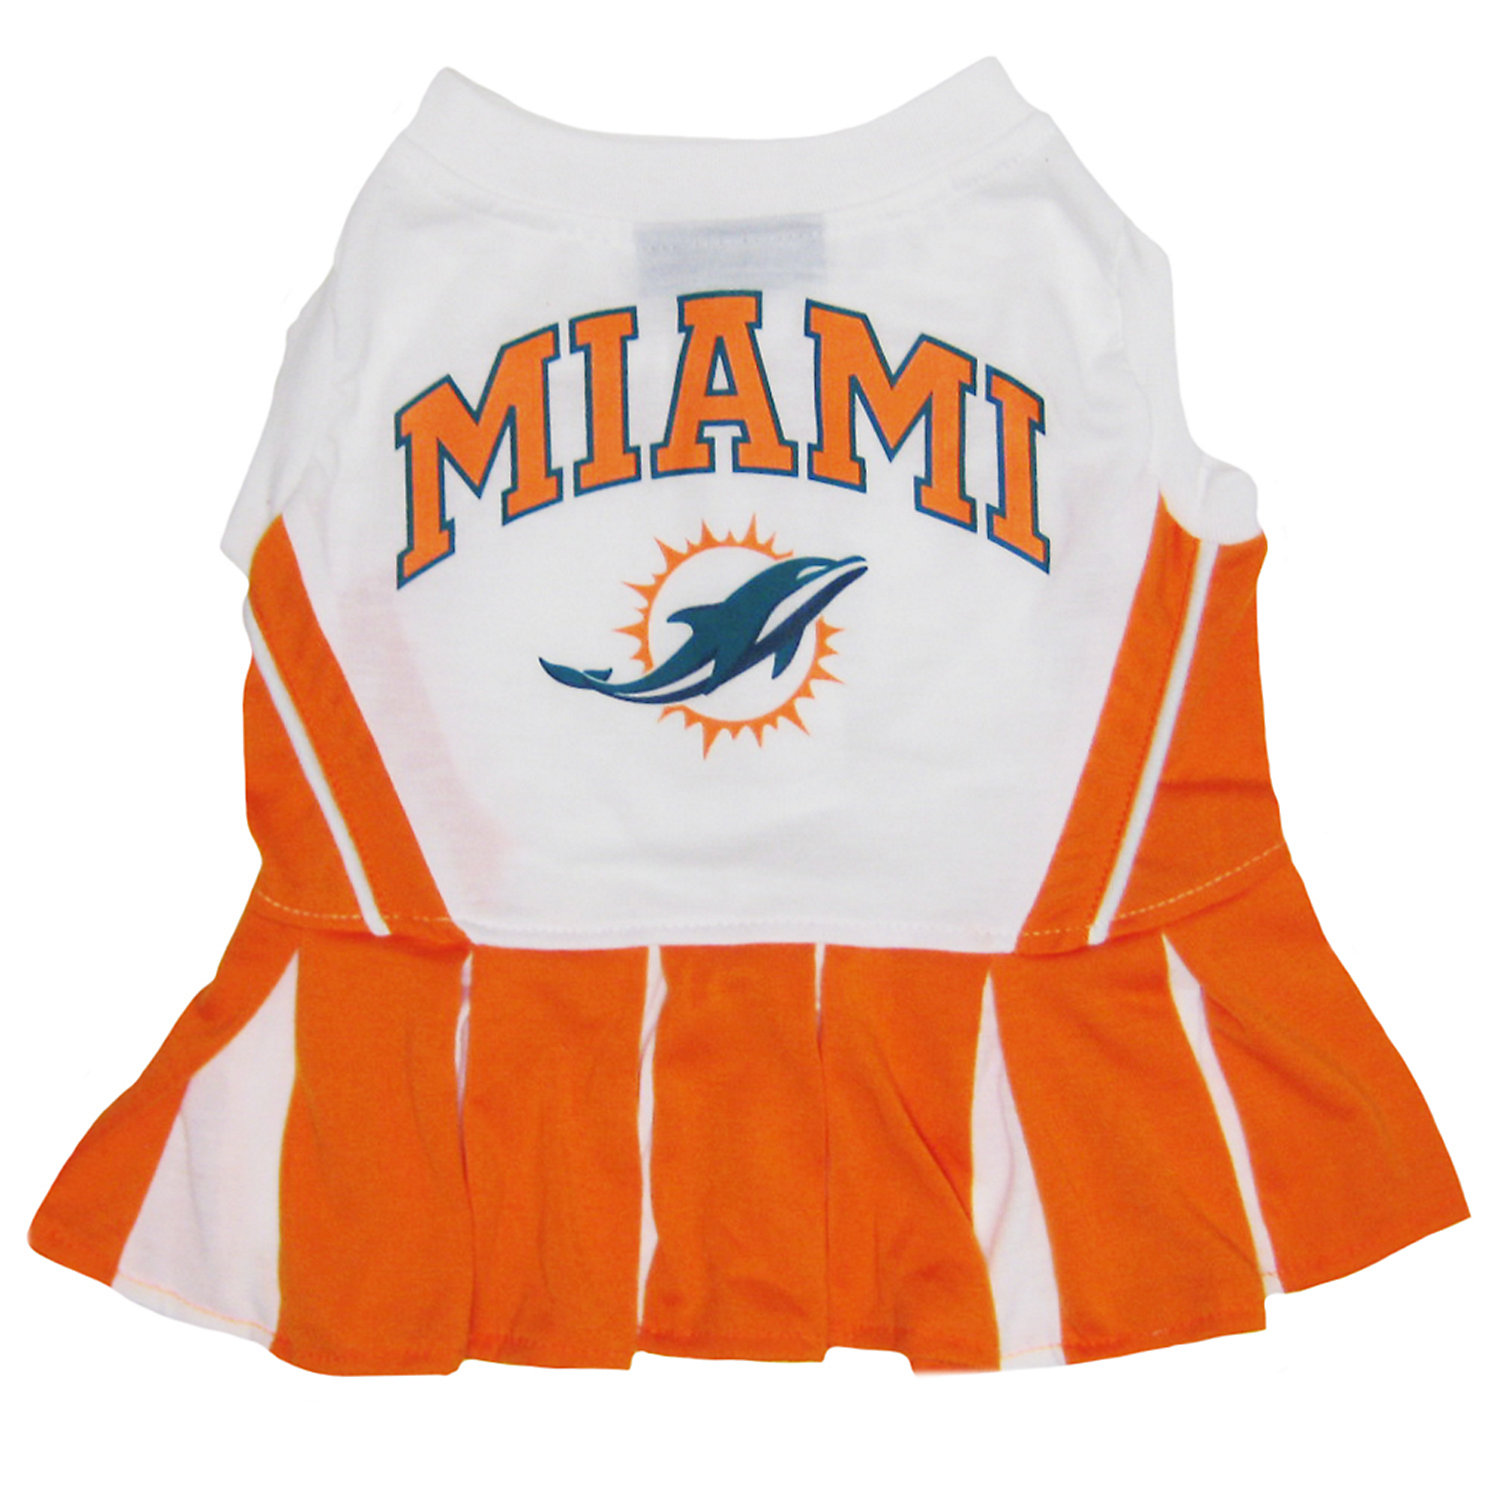 Pets First Miami Dolphins Nfl Cheerleader Outfit Small Orange